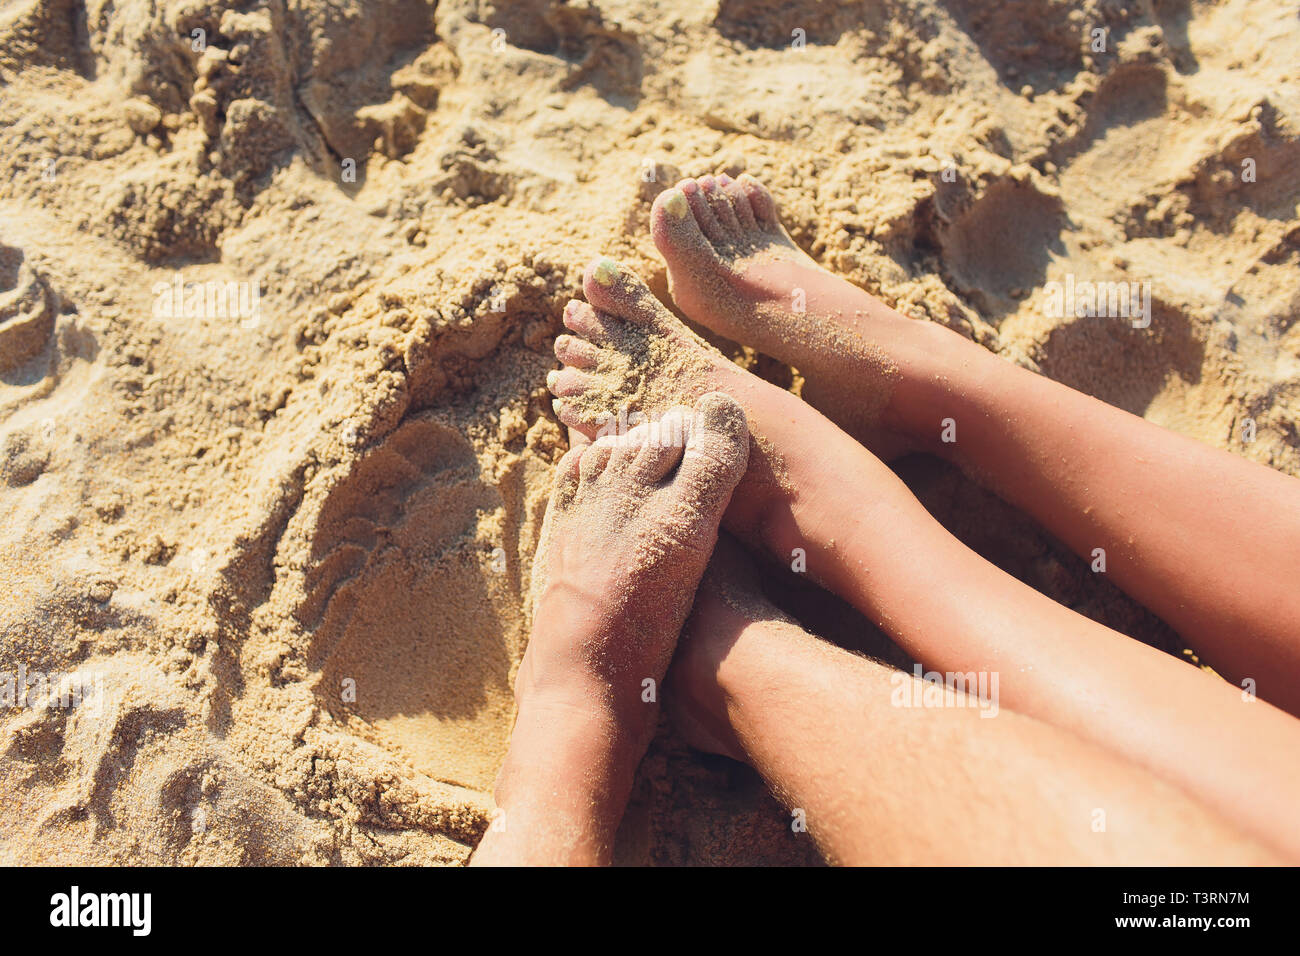 Woman tanned legs on sand beach. Travel concept. Happy feet in tropical paradise. - Stock Image